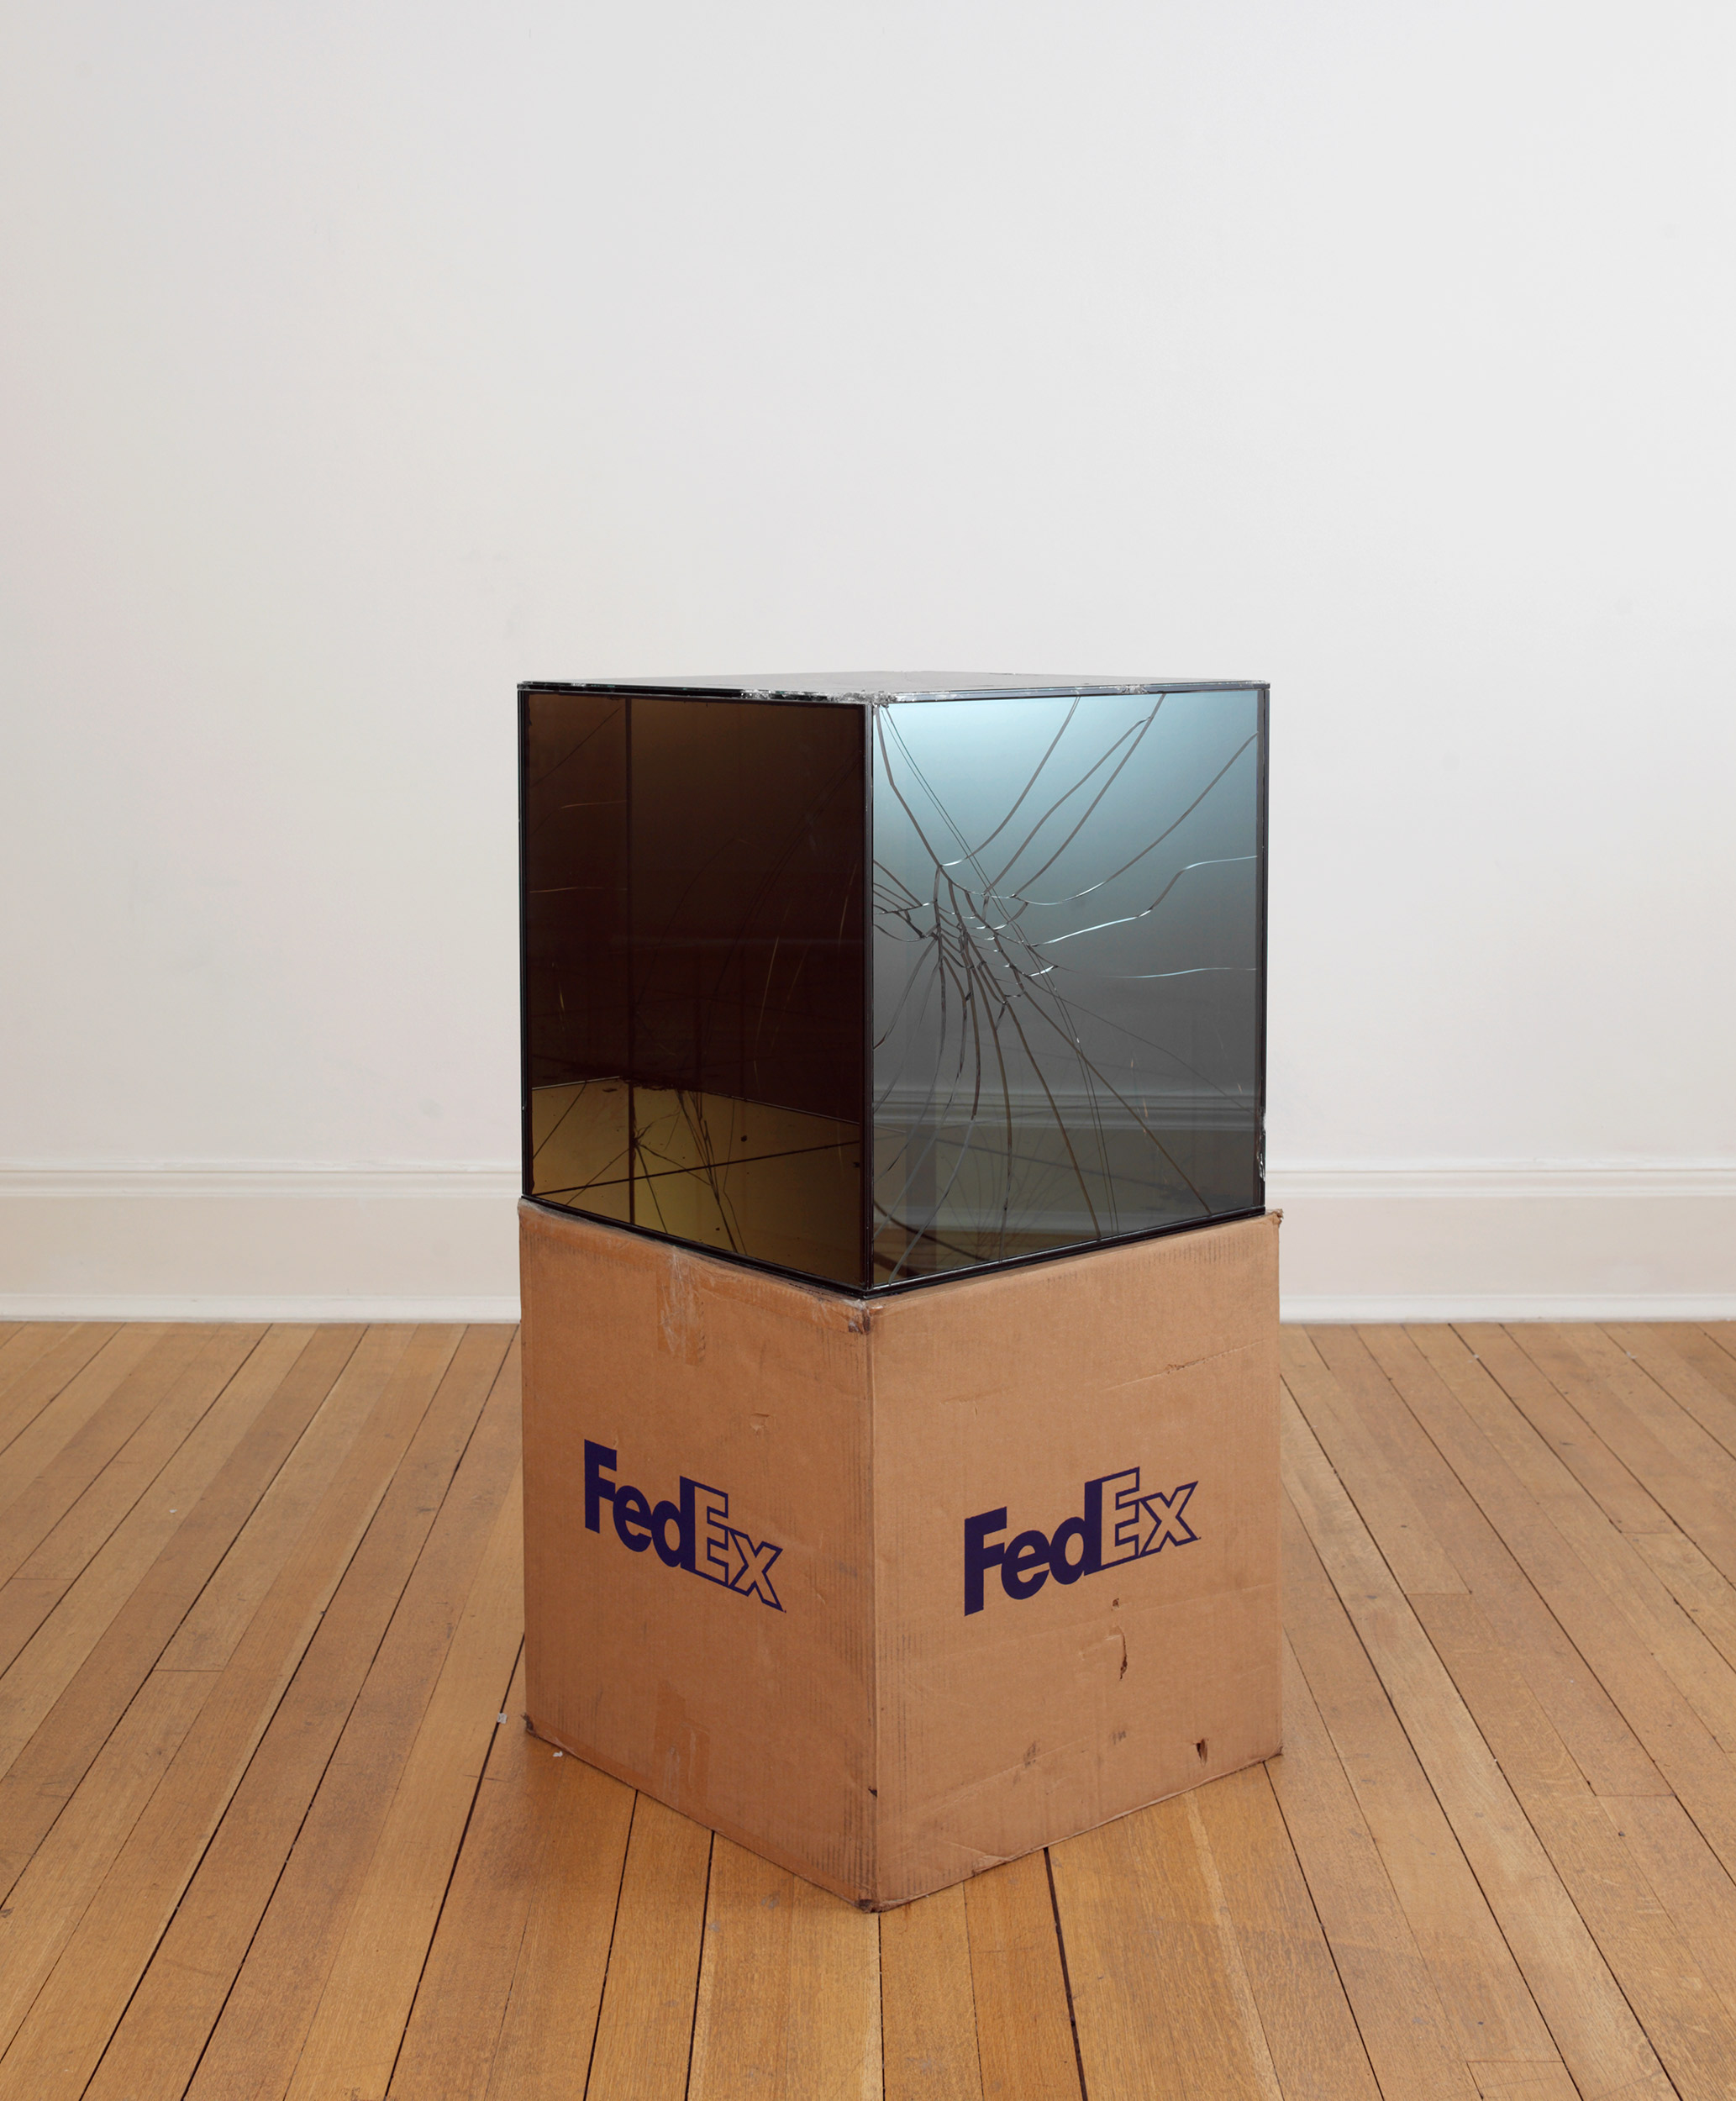 FedEx® Large Kraft Box 2008 FEDEX 330510 REV 6/08 GP, International Priority, Los Angeles–London trk#868587728072, October 02–05, 2009    2009–   Laminated Mirropane, FedEx shipping box, accrued FedEx shipping and tracking labels, silicone, metal, tape  20 x 20 x 20 inches   Production Stills, 2009